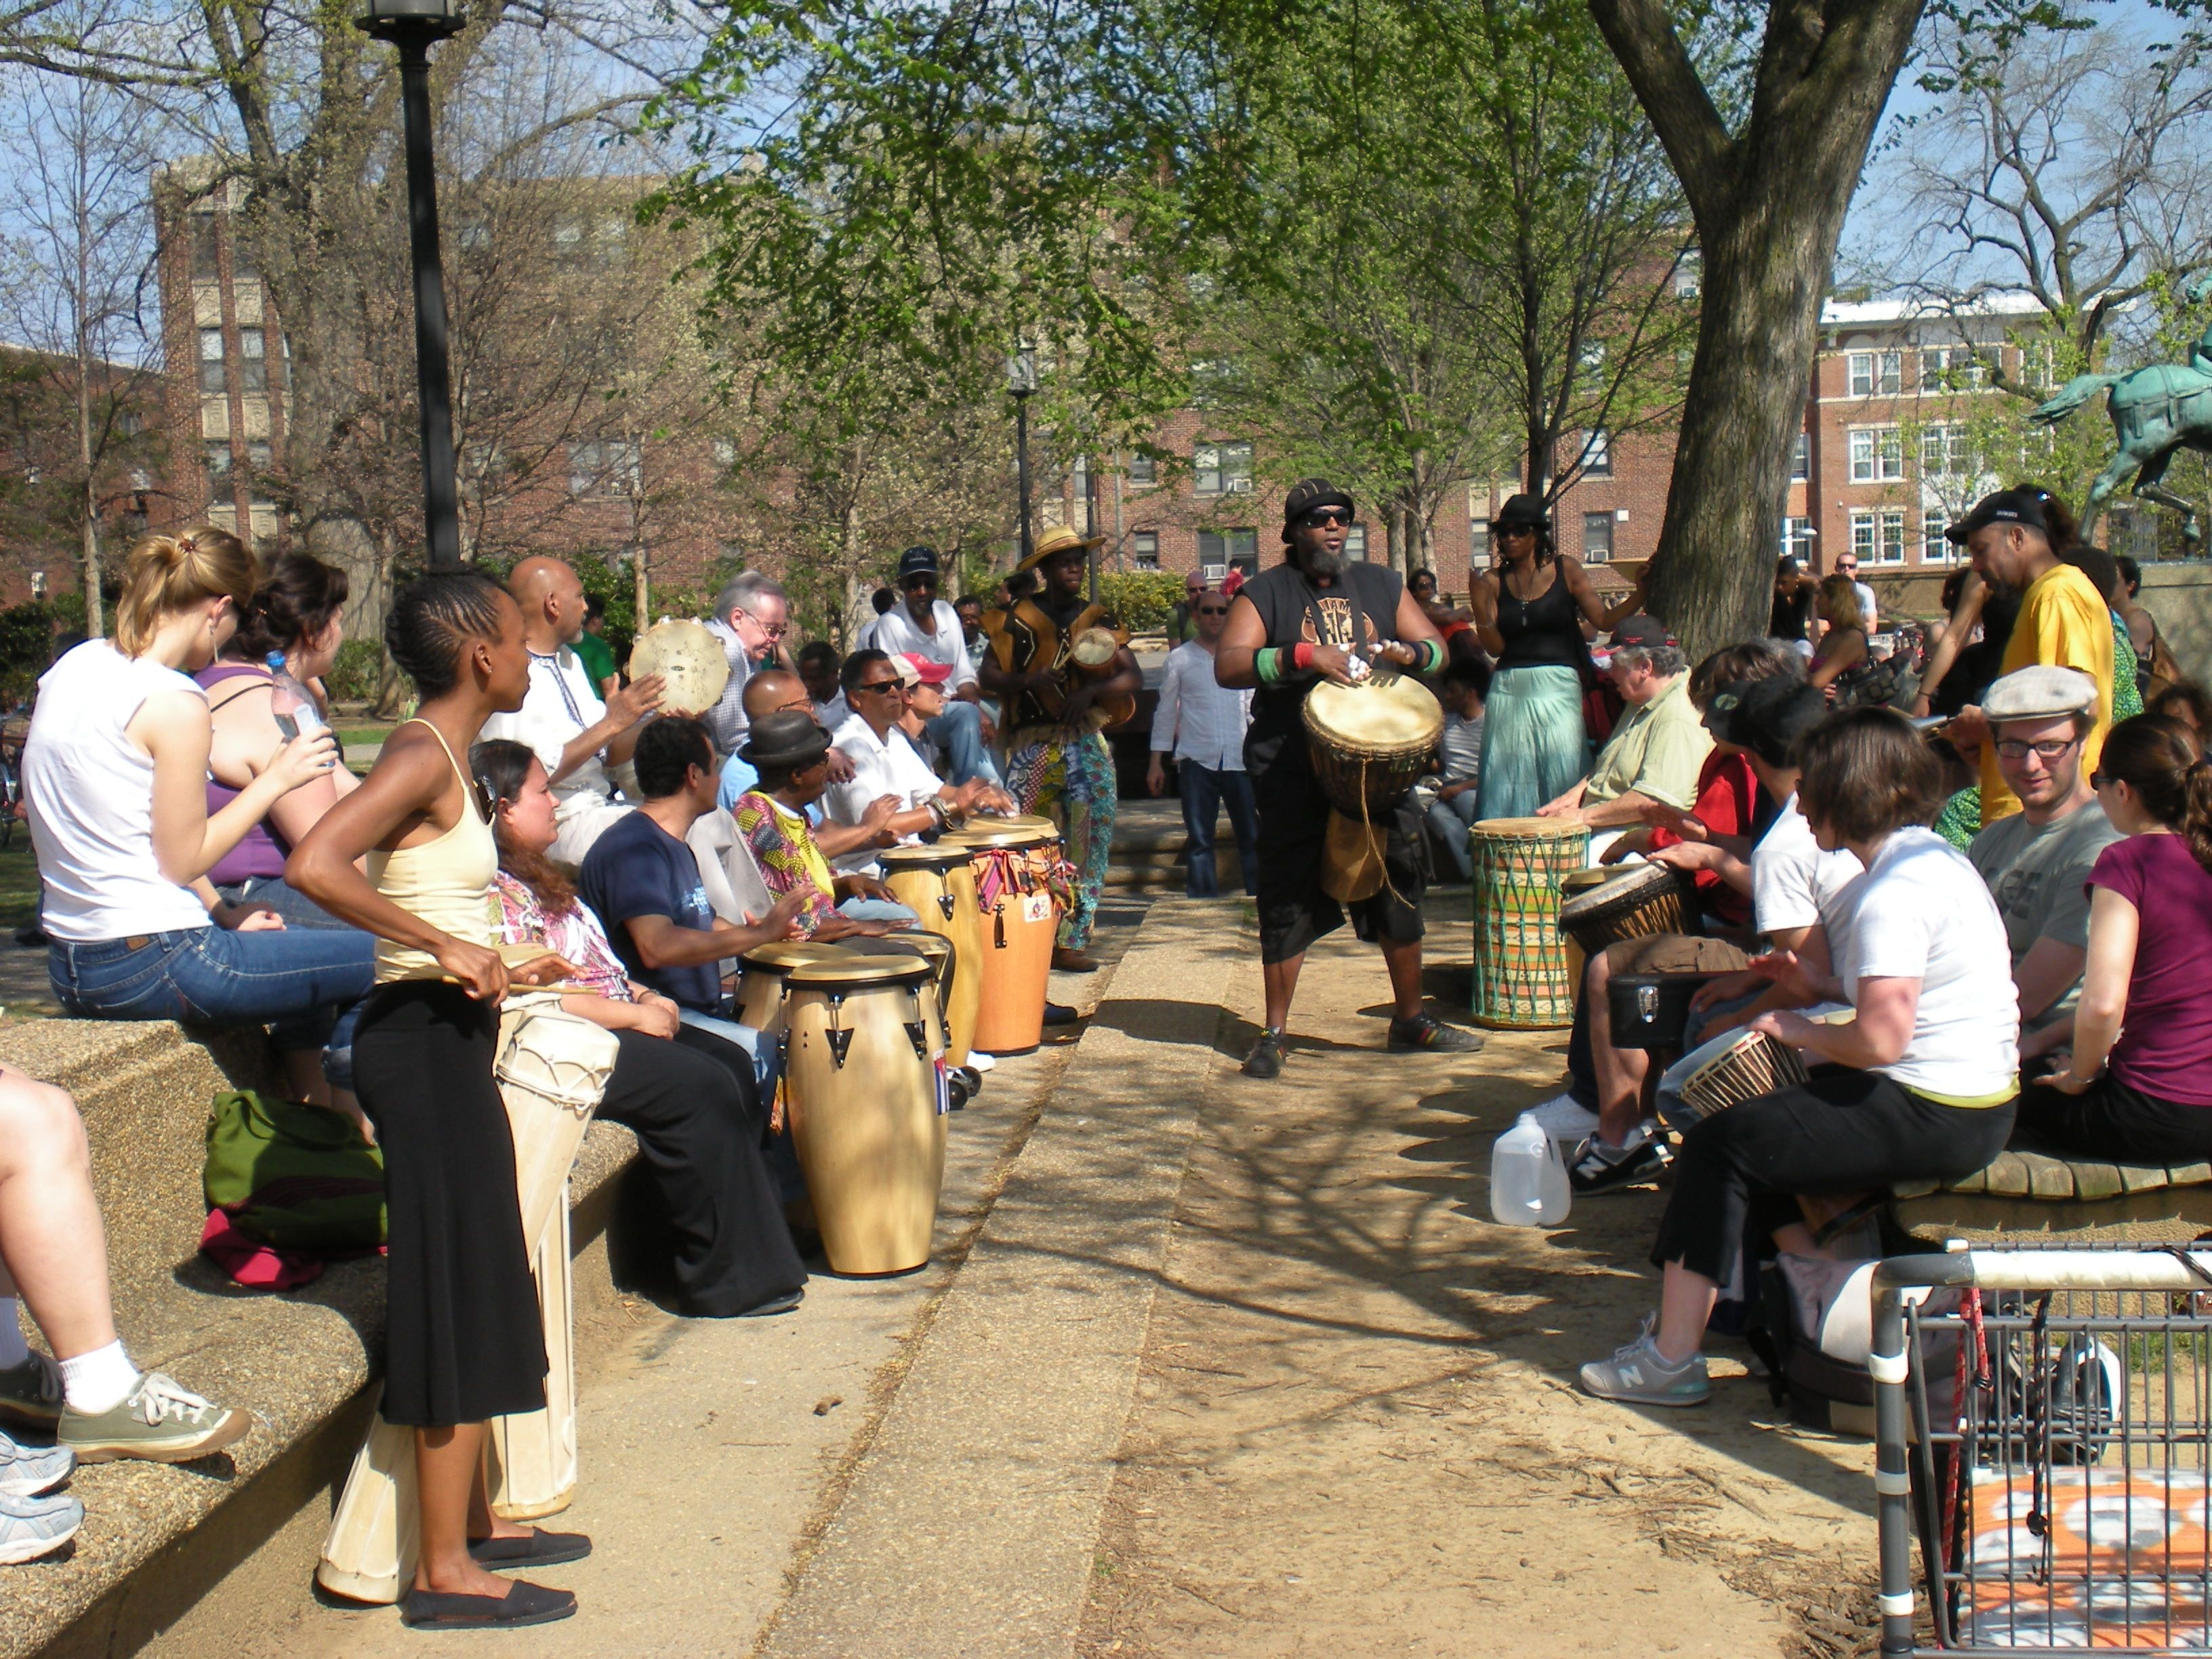 Similar To The Jazz In The Garden There Is This Historic Drum Circle Community In The